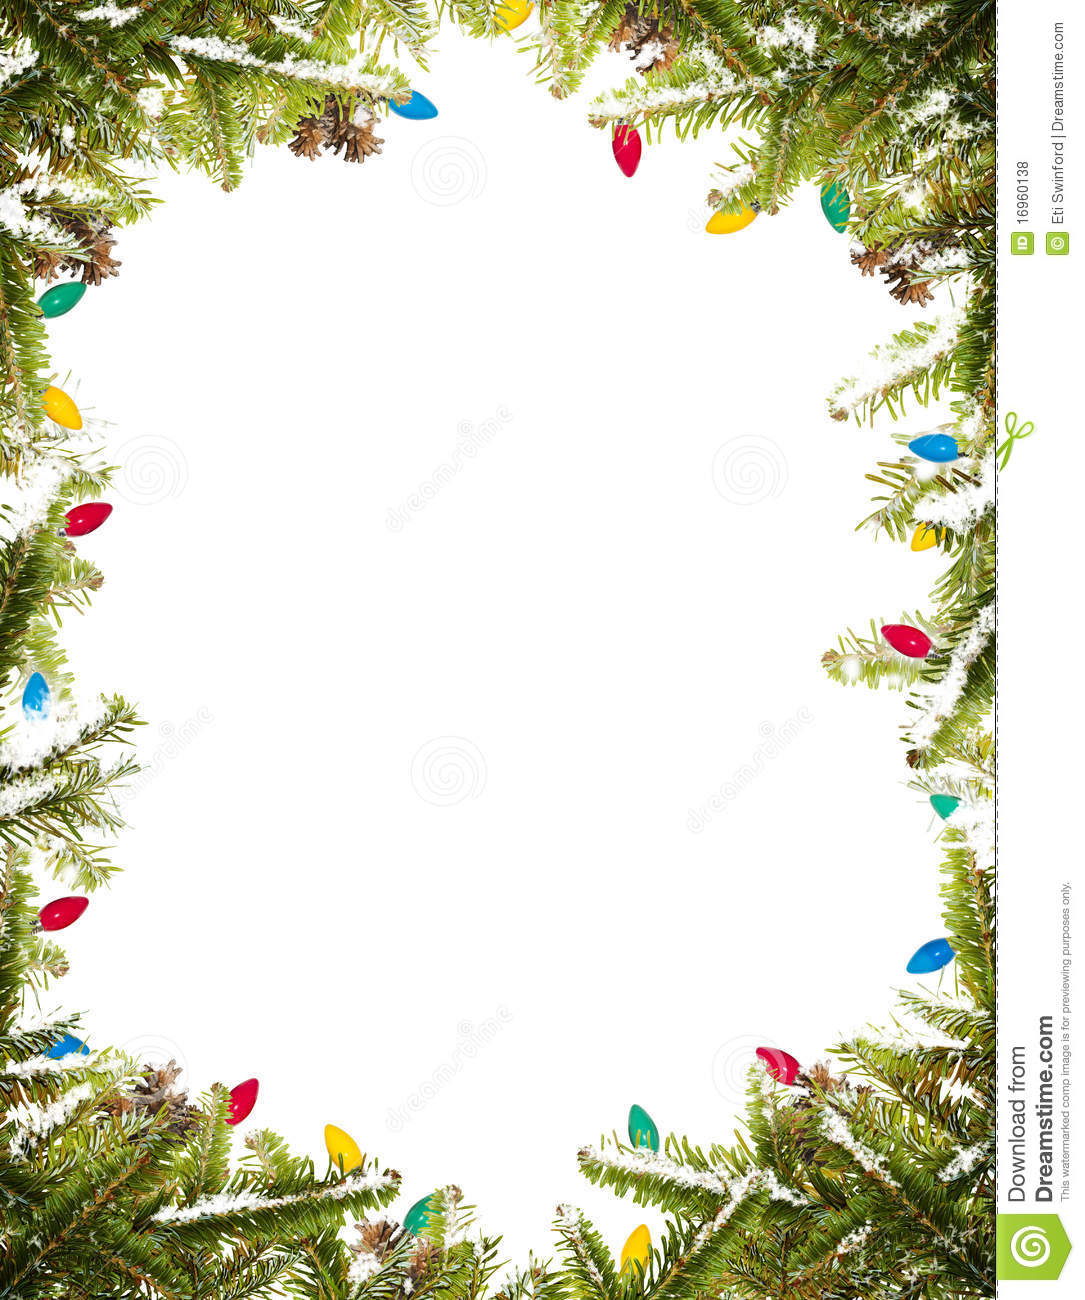 Christmas Frame Royalty Free Stock Photos - Image: 16960138